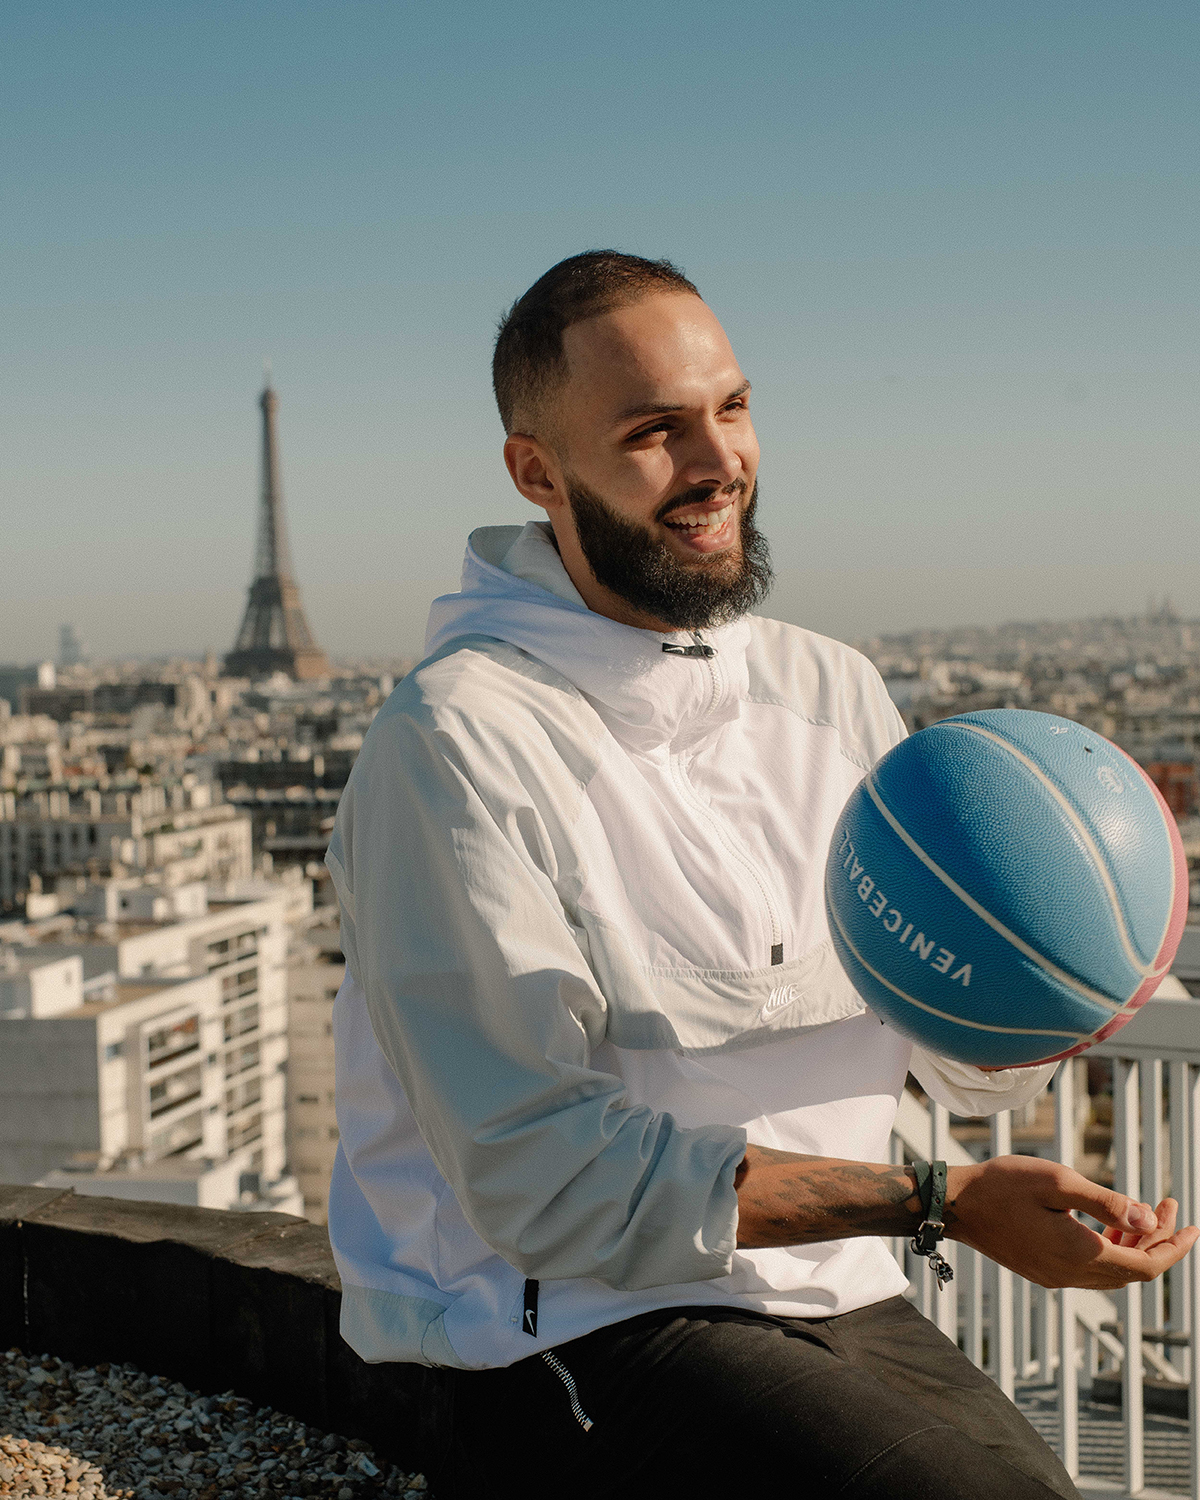 evan-fournier-interview-basket-yard